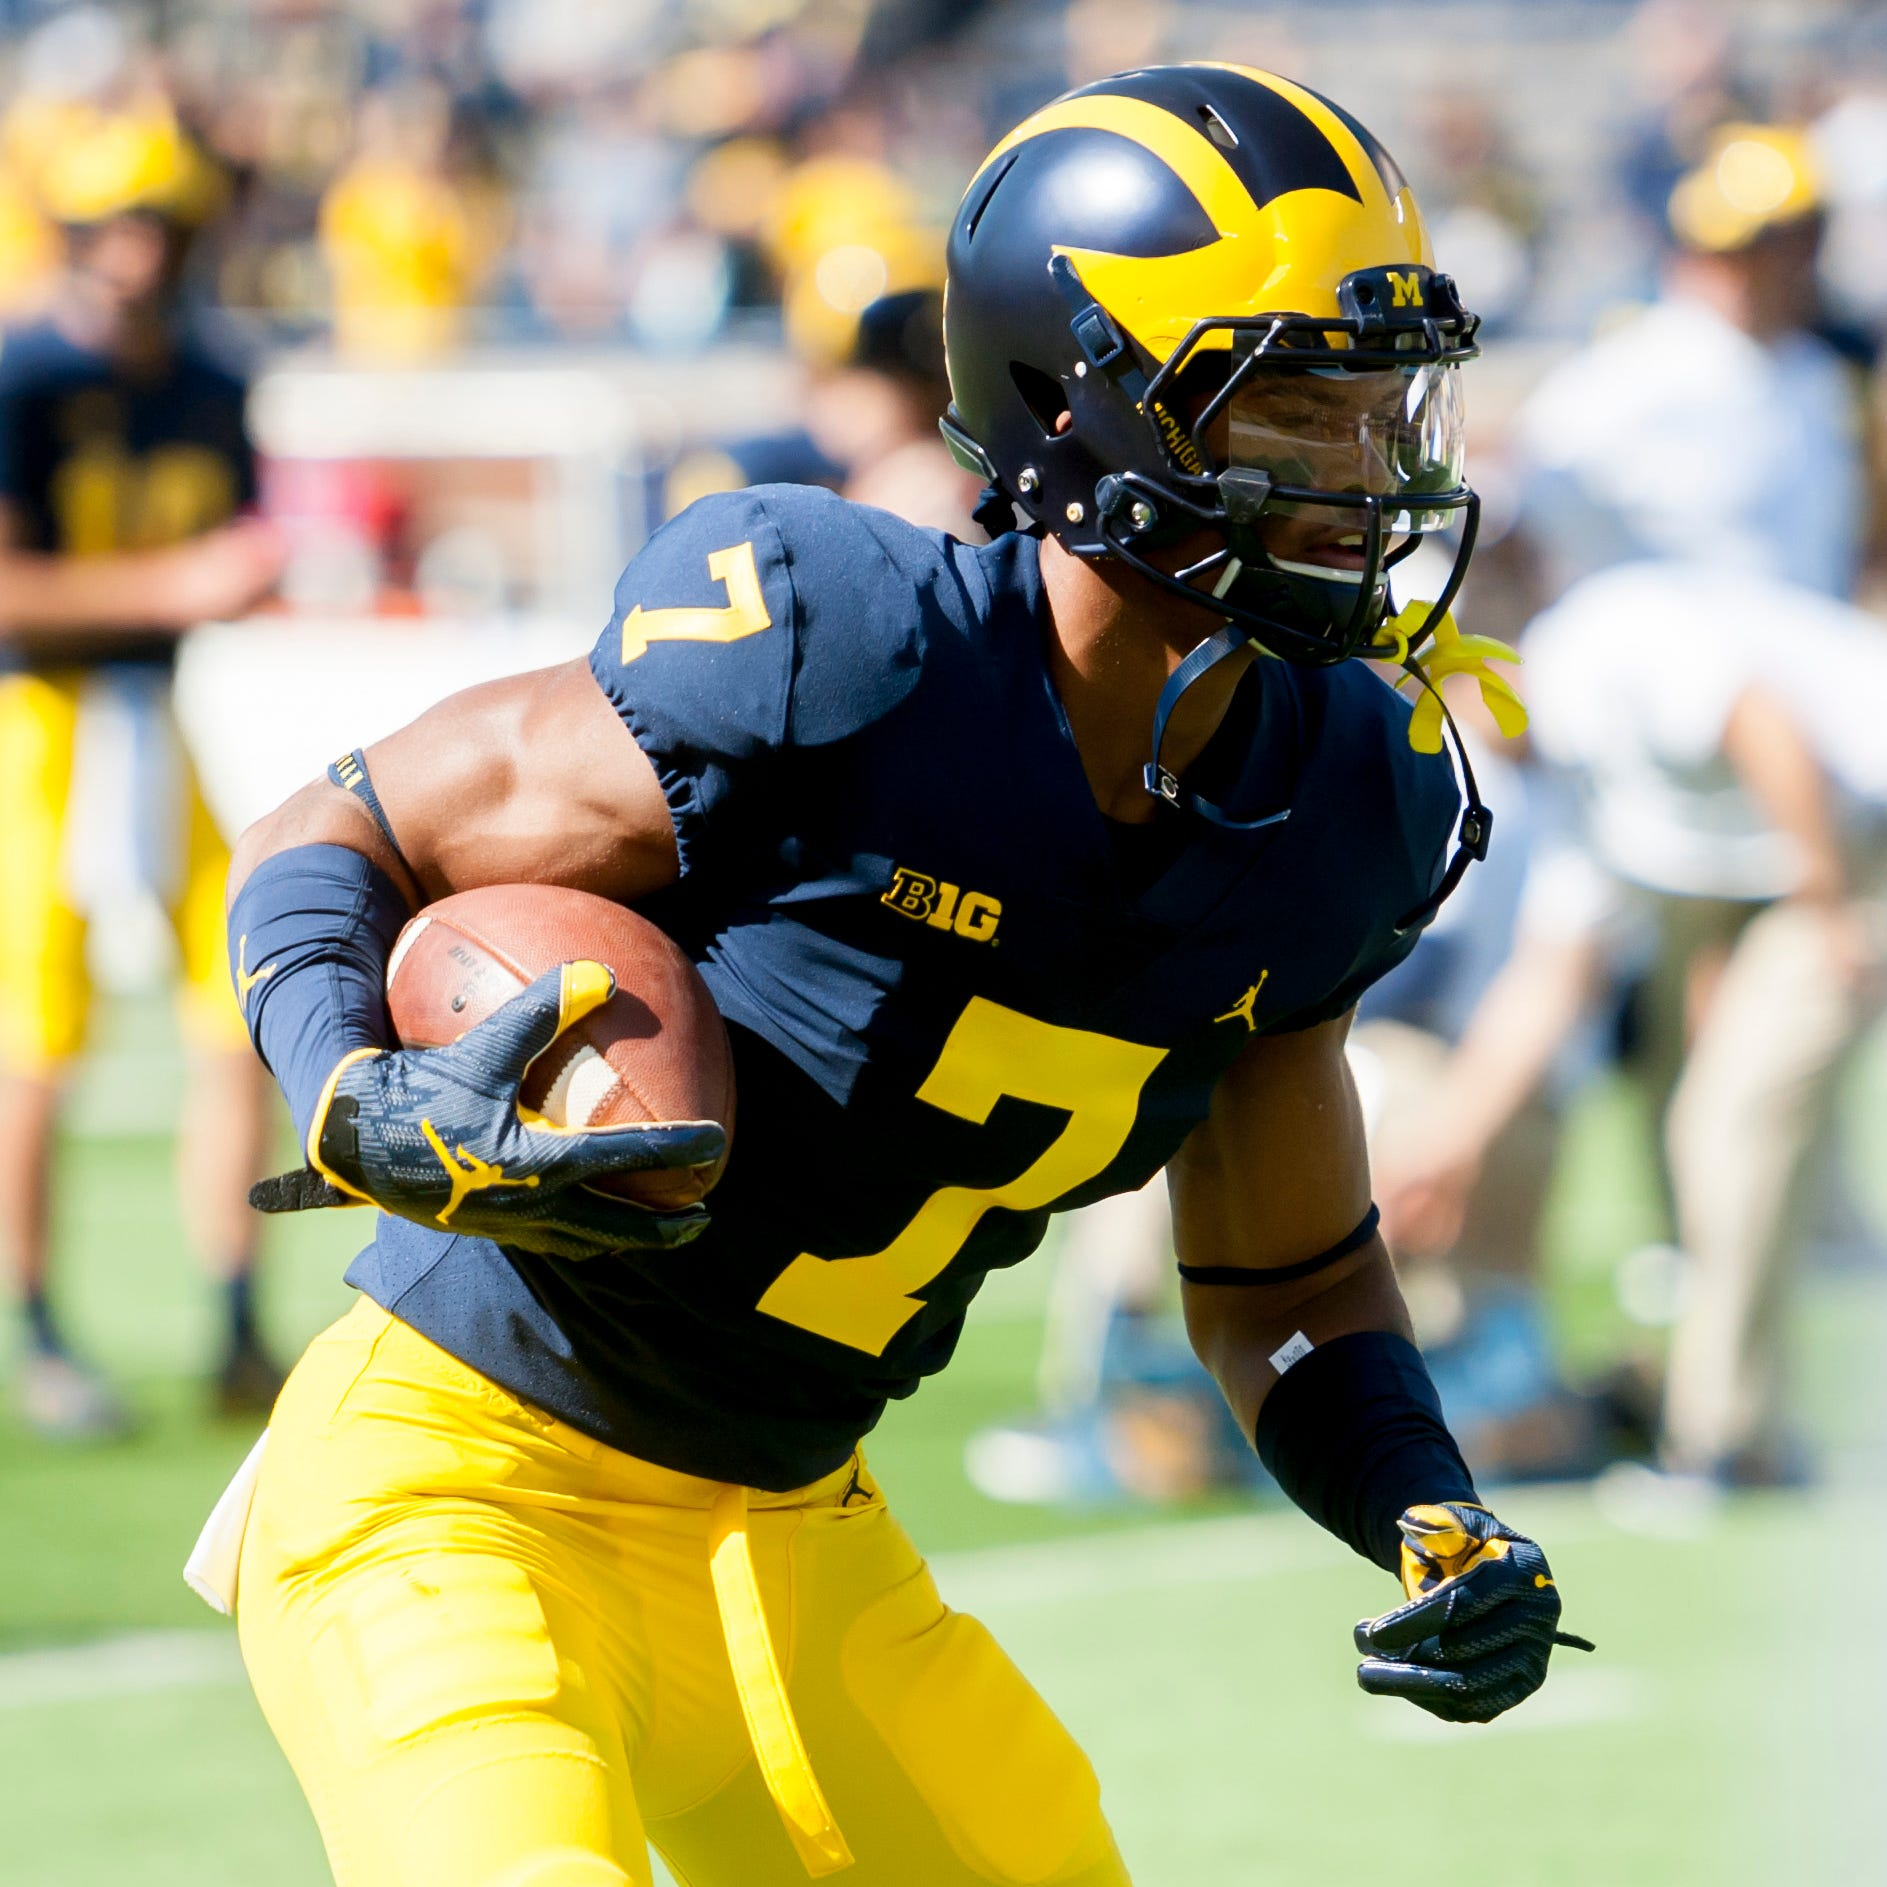 Michigan's Harbaugh says Tarik Black 'progressing' in rehab for broken foot